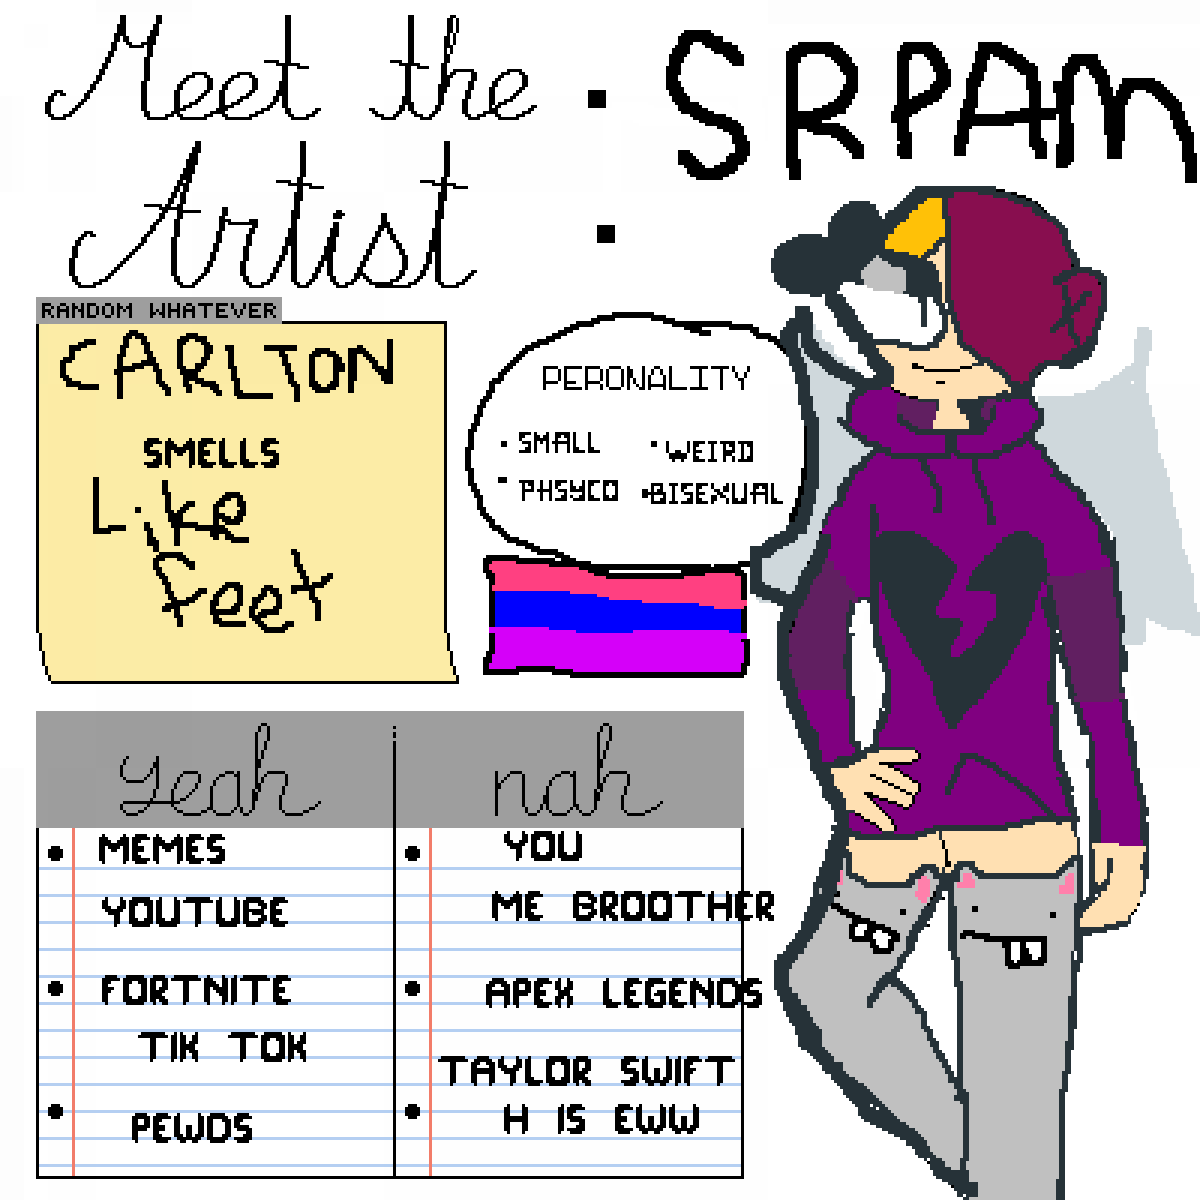 Welcome! A little info on meh